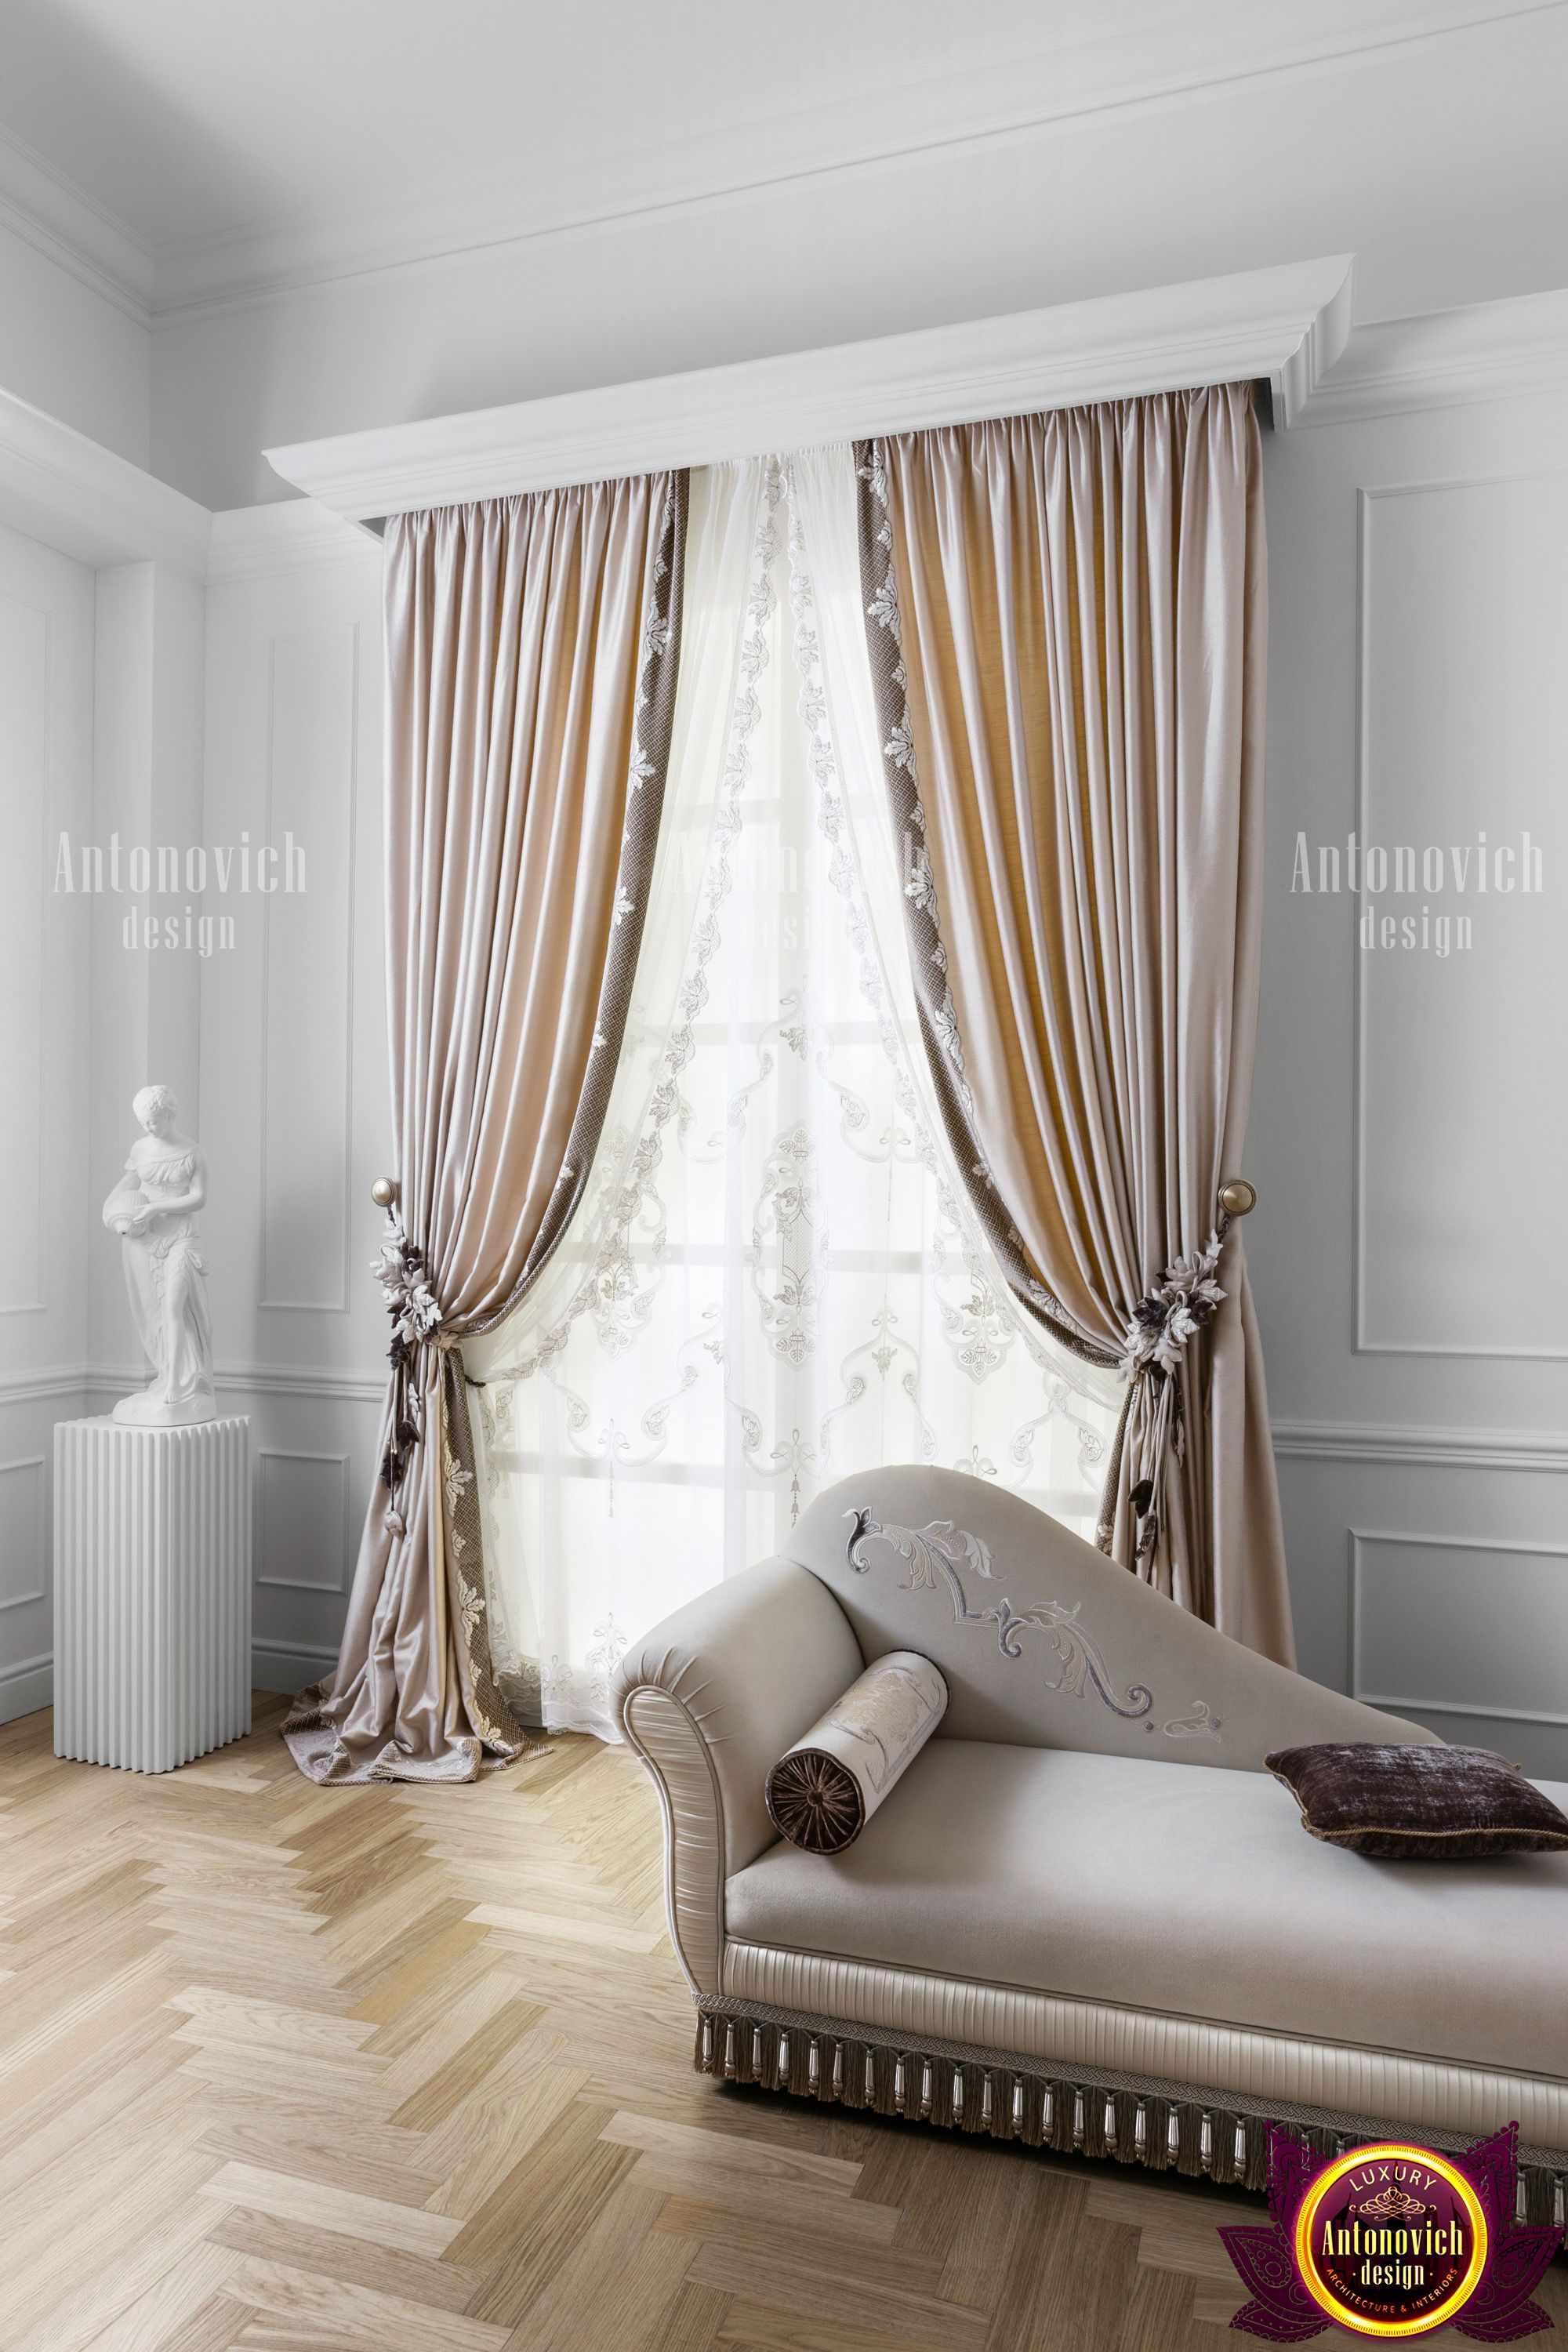 Traditional Or Original Design Of Curtains Is The Final Touch That